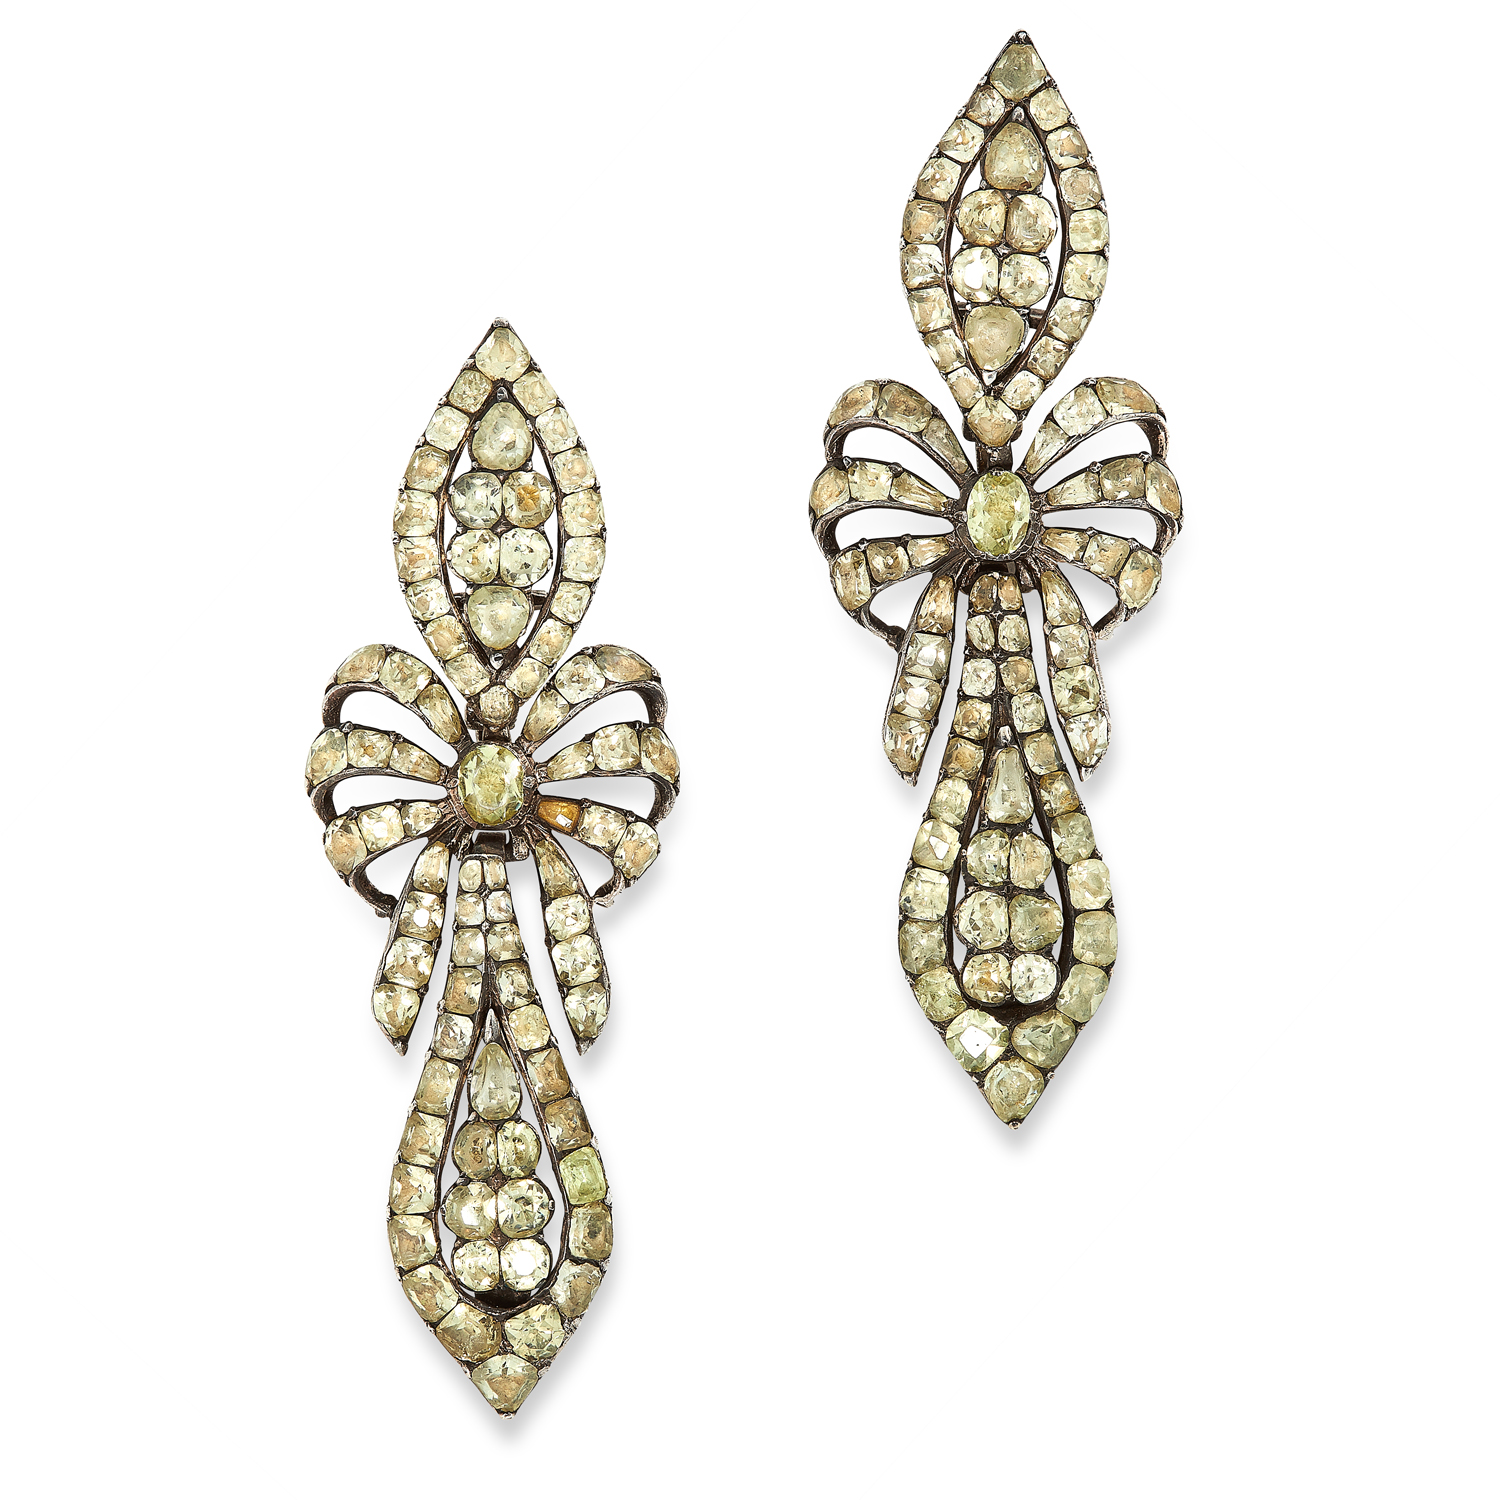 A PAIR OF ANTIQUE CHRYSOLITE EARRINGS, PORTUGUESE